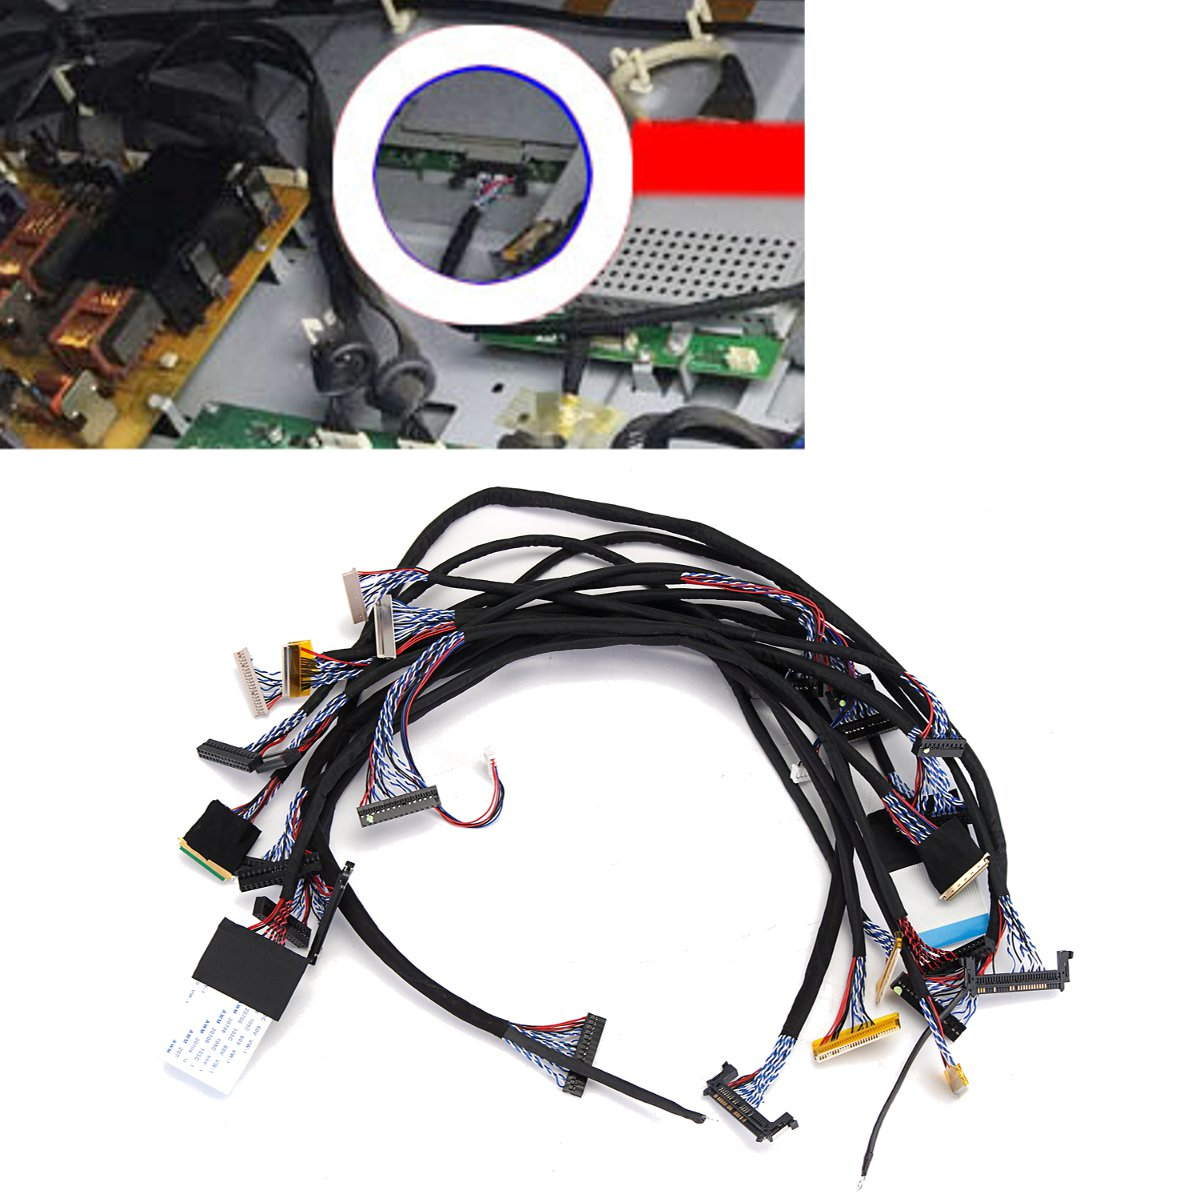 14Pcs Universal FPC/LVDS Display Cable Support For 10-65 Inch Screen LCD Controller Board